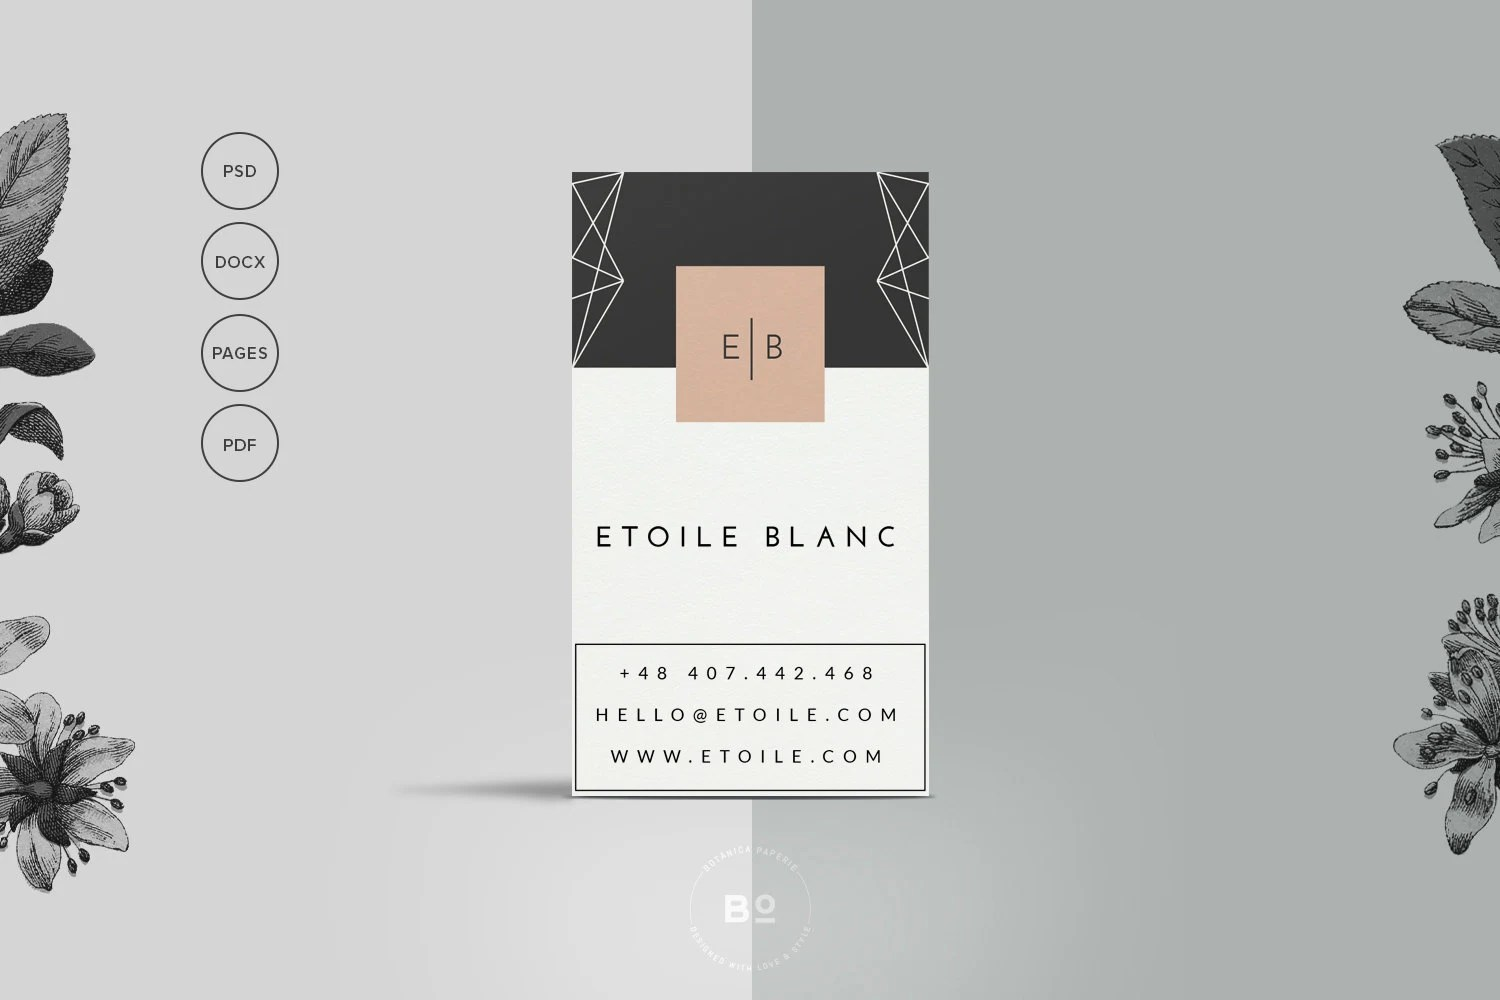 INSTANT DOWNLOAD Hello DIY Printable Business Card 2 Premade Business Card Templates   Set of 2 Printable Business Cards    Hipster Card Design   Clean Personal Card Design   Instant Download